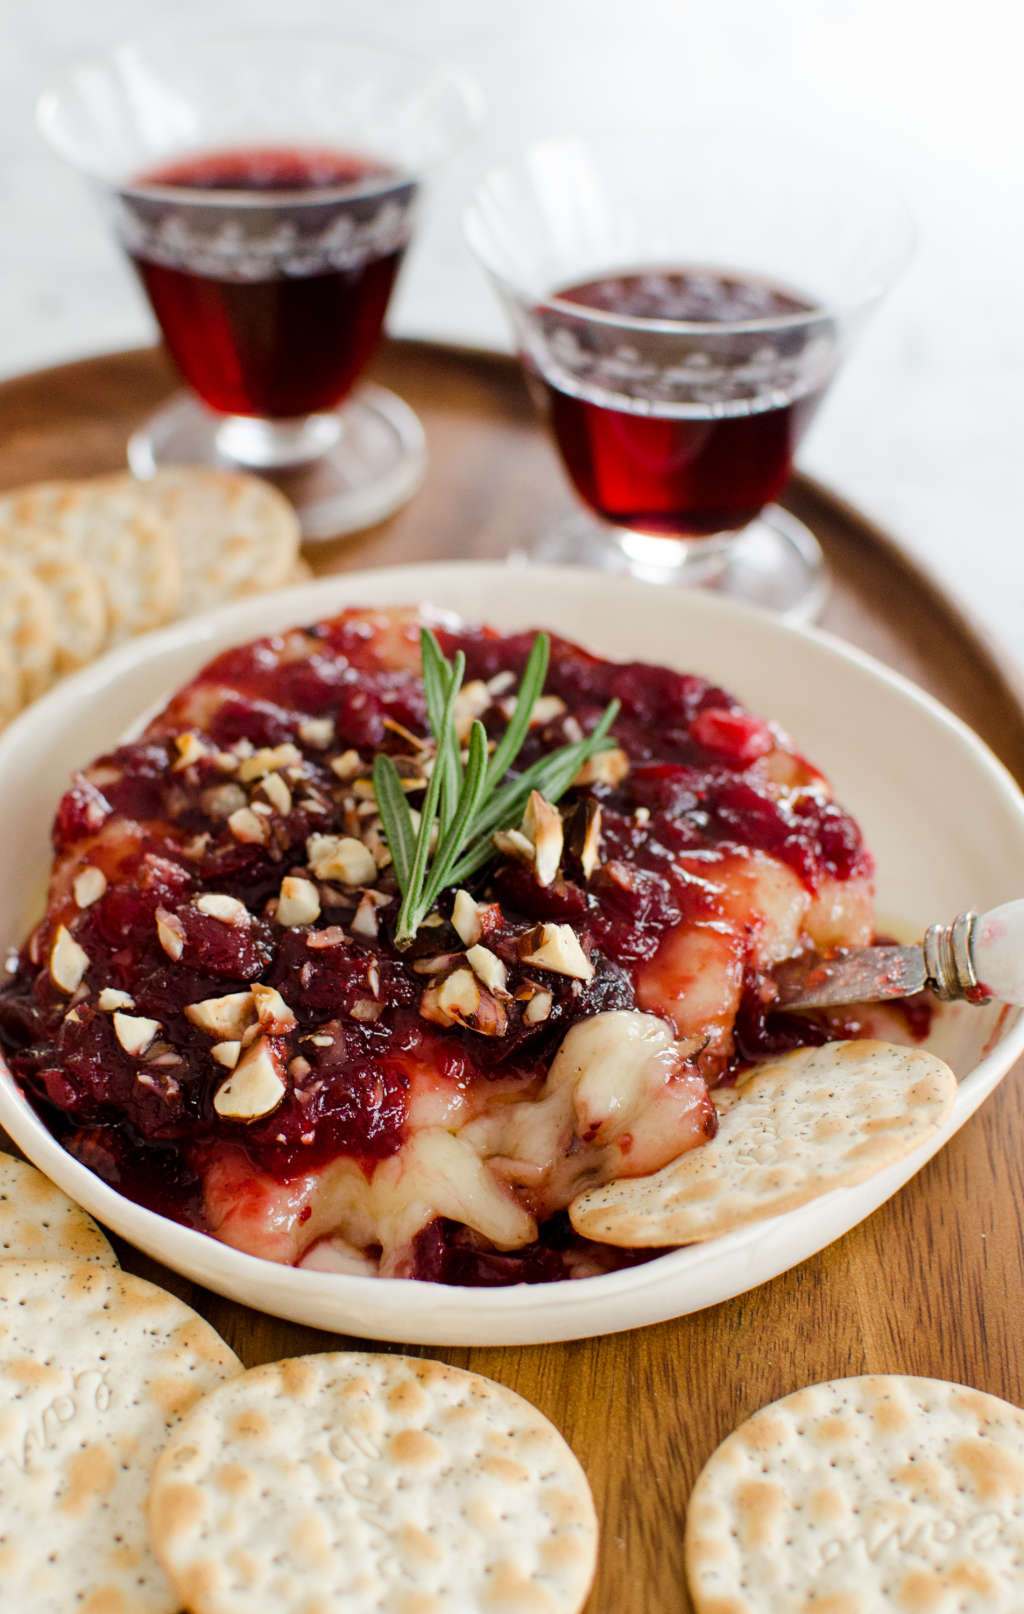 Holiday Appetizer Recipe: Baked Brie With Cranberry Sauce